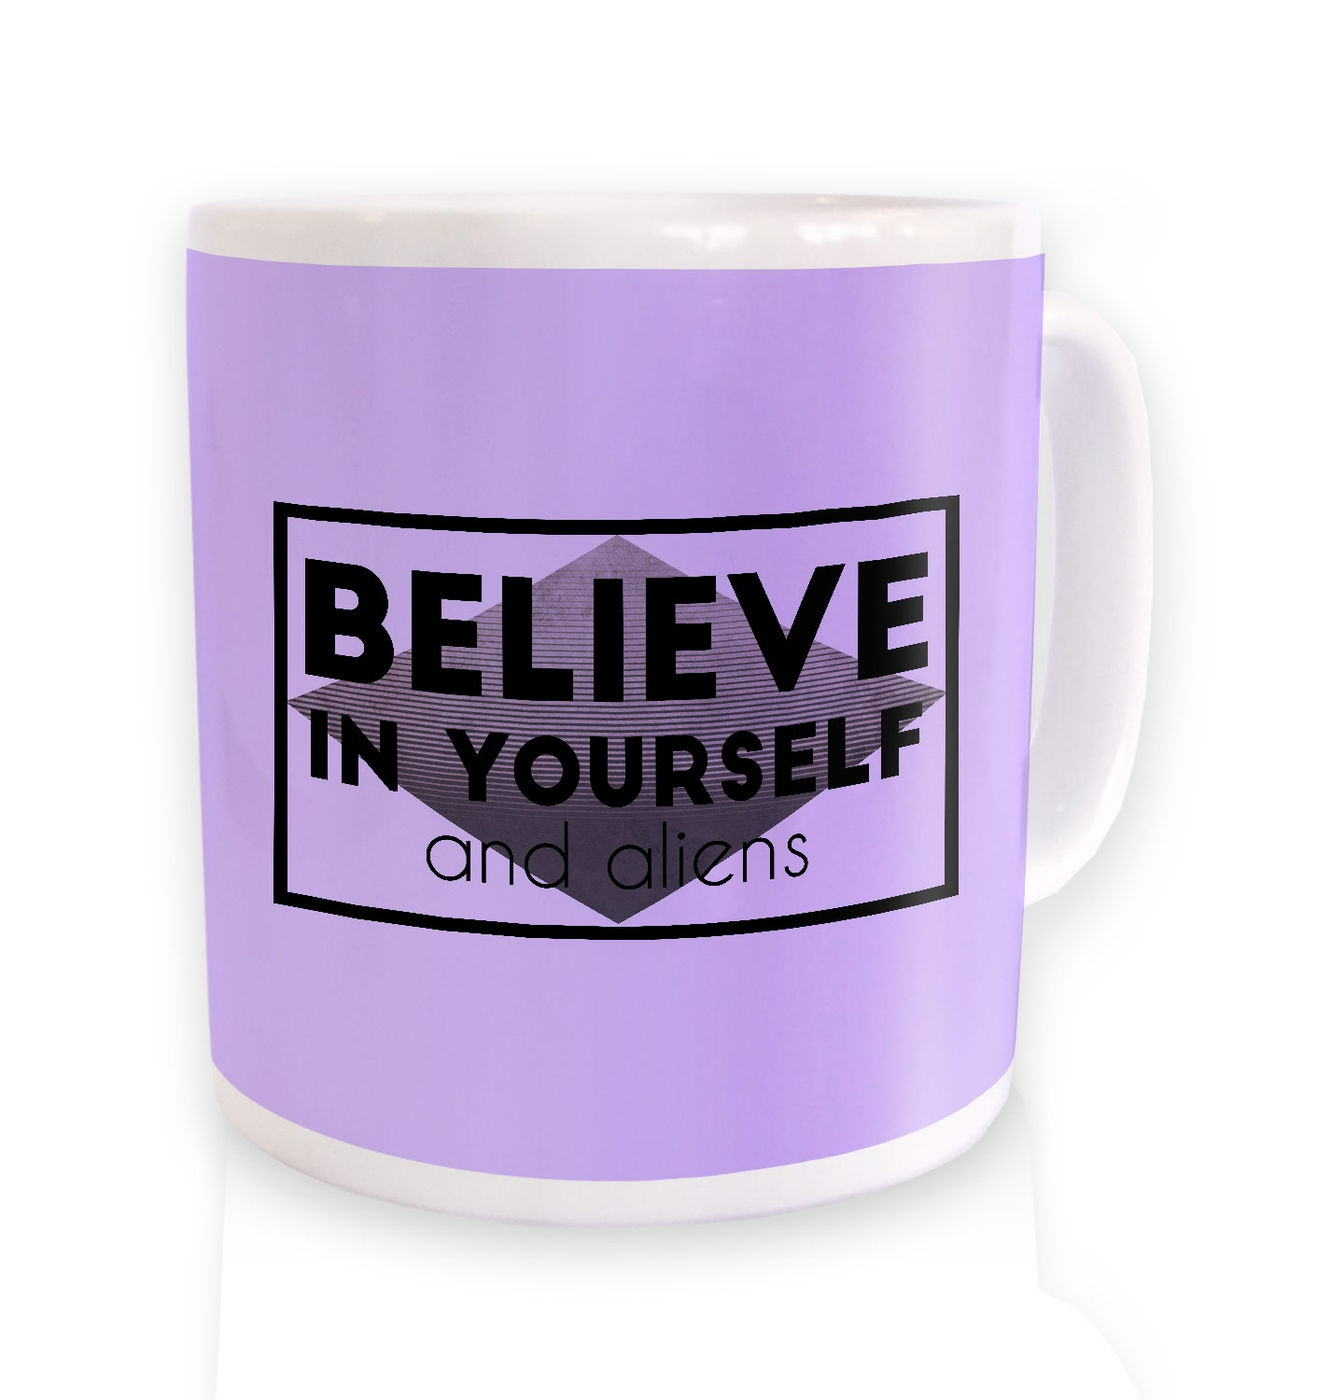 Believe In Yourself And Aliens mug by Something Geeky